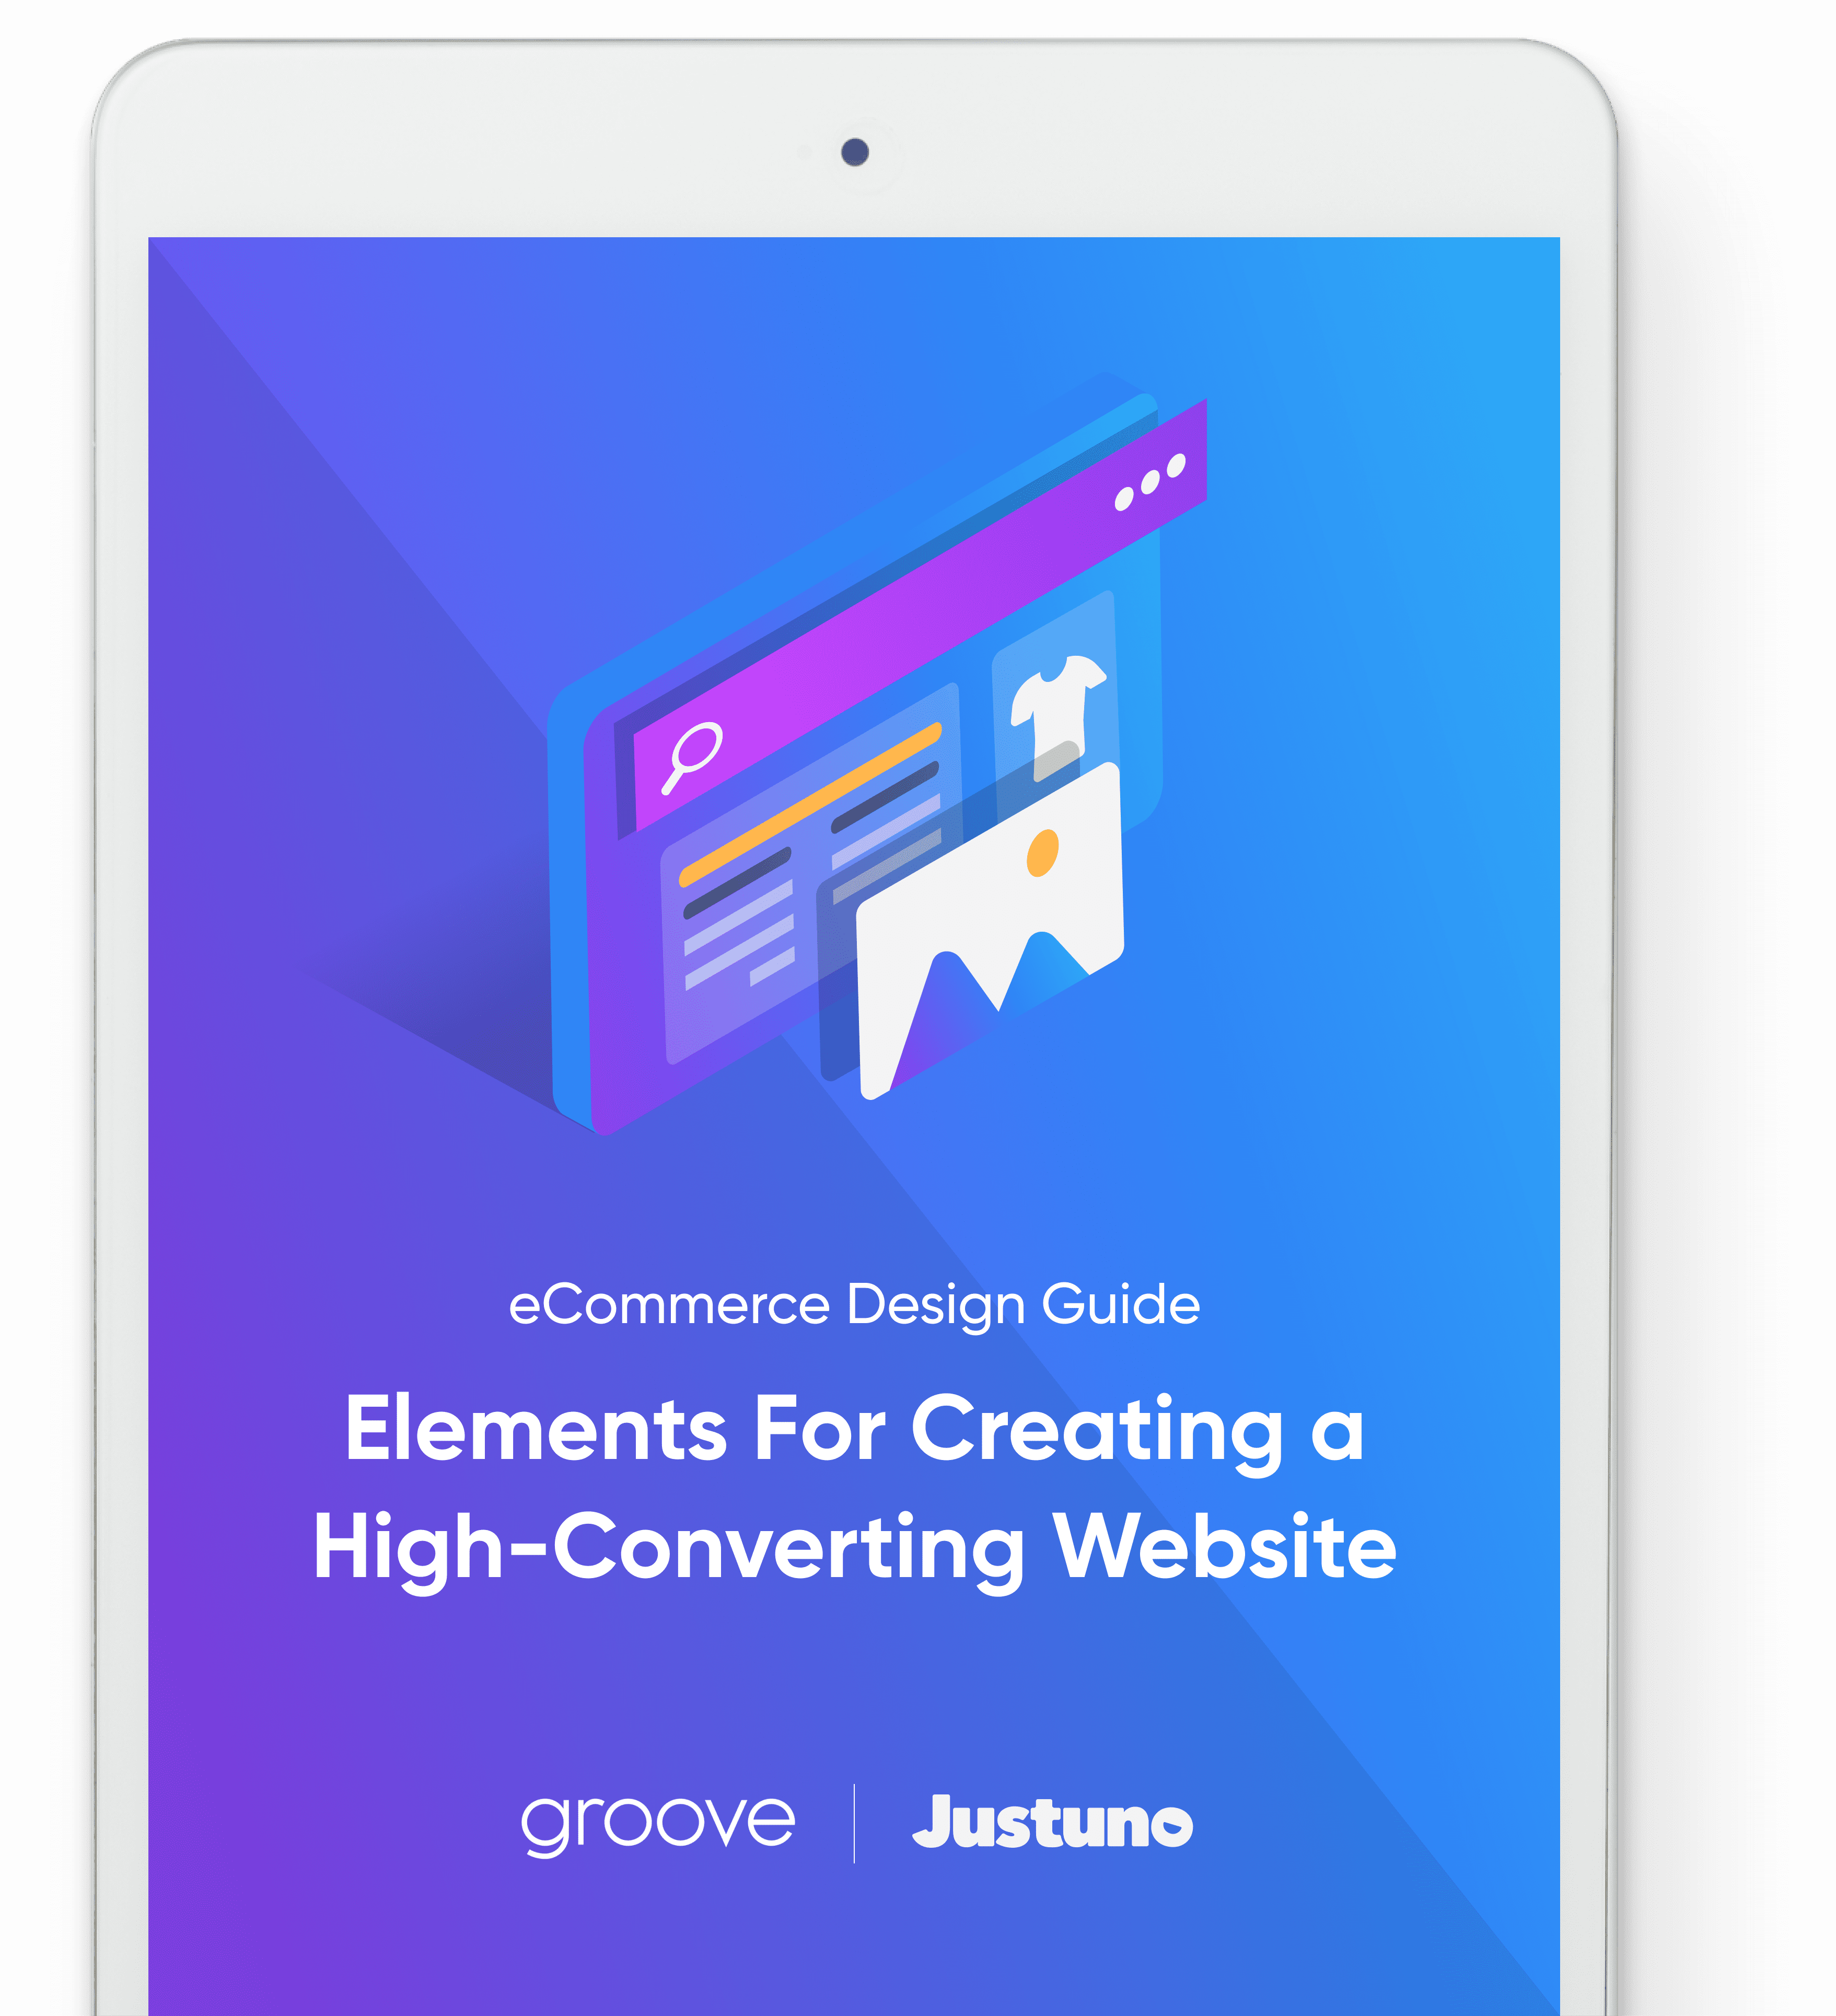 eCommerce Design Guide: Elements For Creating A High-Converting Website